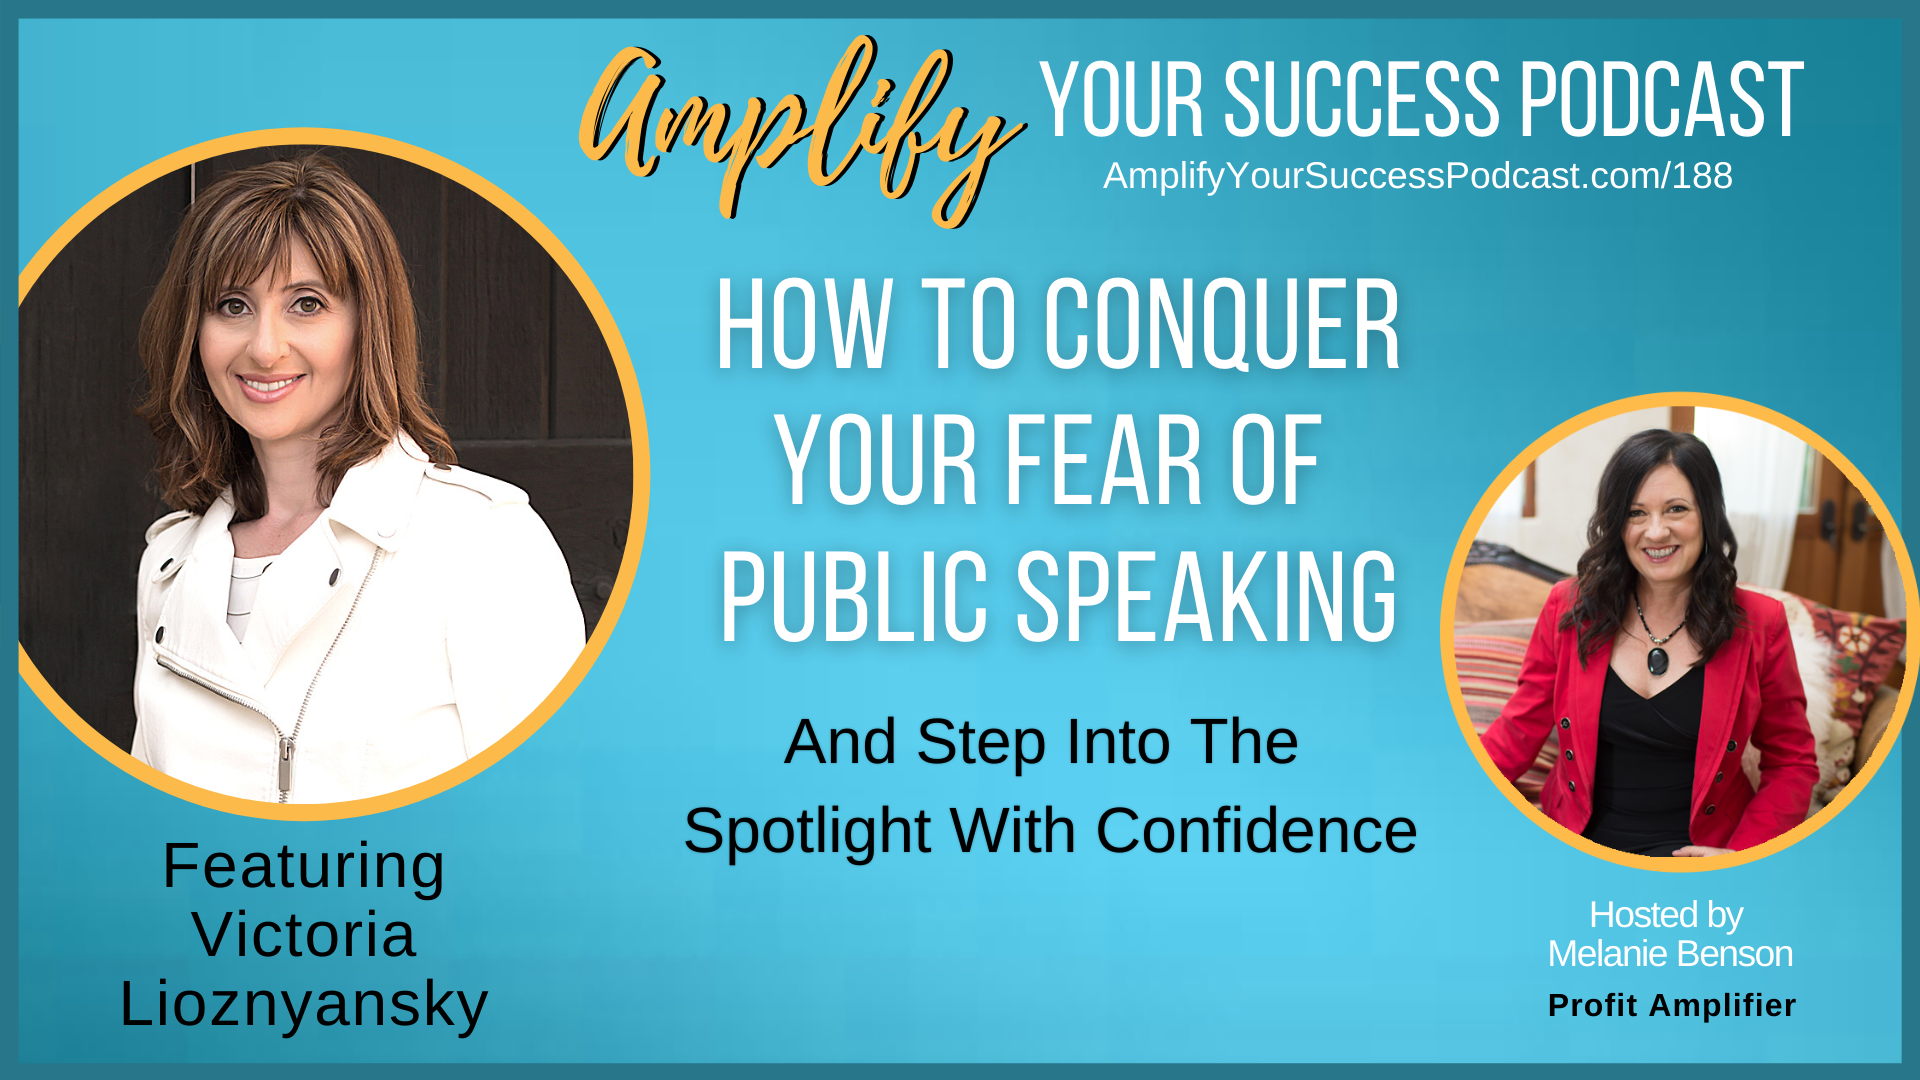 How to conquer your fear of public speaking and step into the spotlight with confidence with Victoria Lioznyansky on Amplify Your Success #Podcast Episode 188 with Melanie Benson